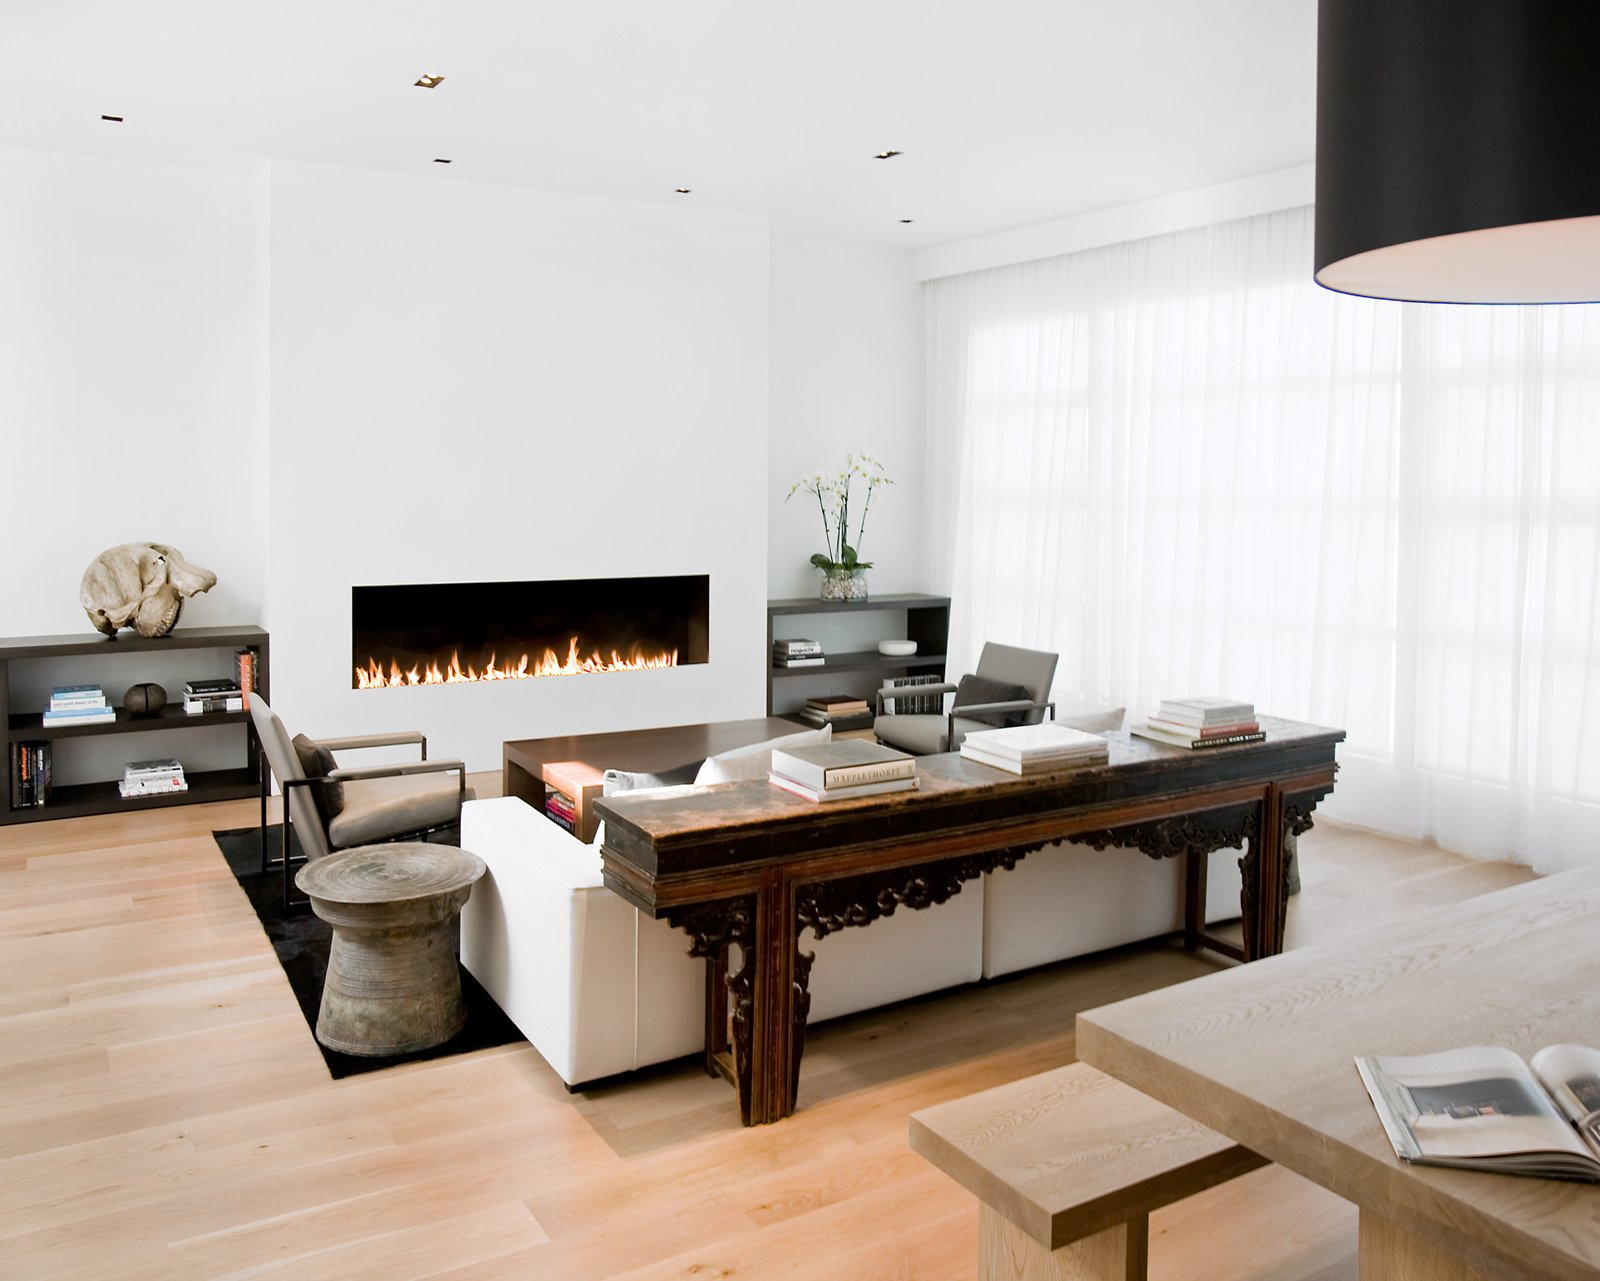 The living room and dining room were originally separated by a central fireplace, which Hollis removed to create this great room. She installed a custom eight-foot-long open gas fireplace in the living room (equipped with sensors that automatically turn it off when someone gets too near to the flames).Photo by   Ben Mayorga Photography  97+ Modern Fireplace Ideas